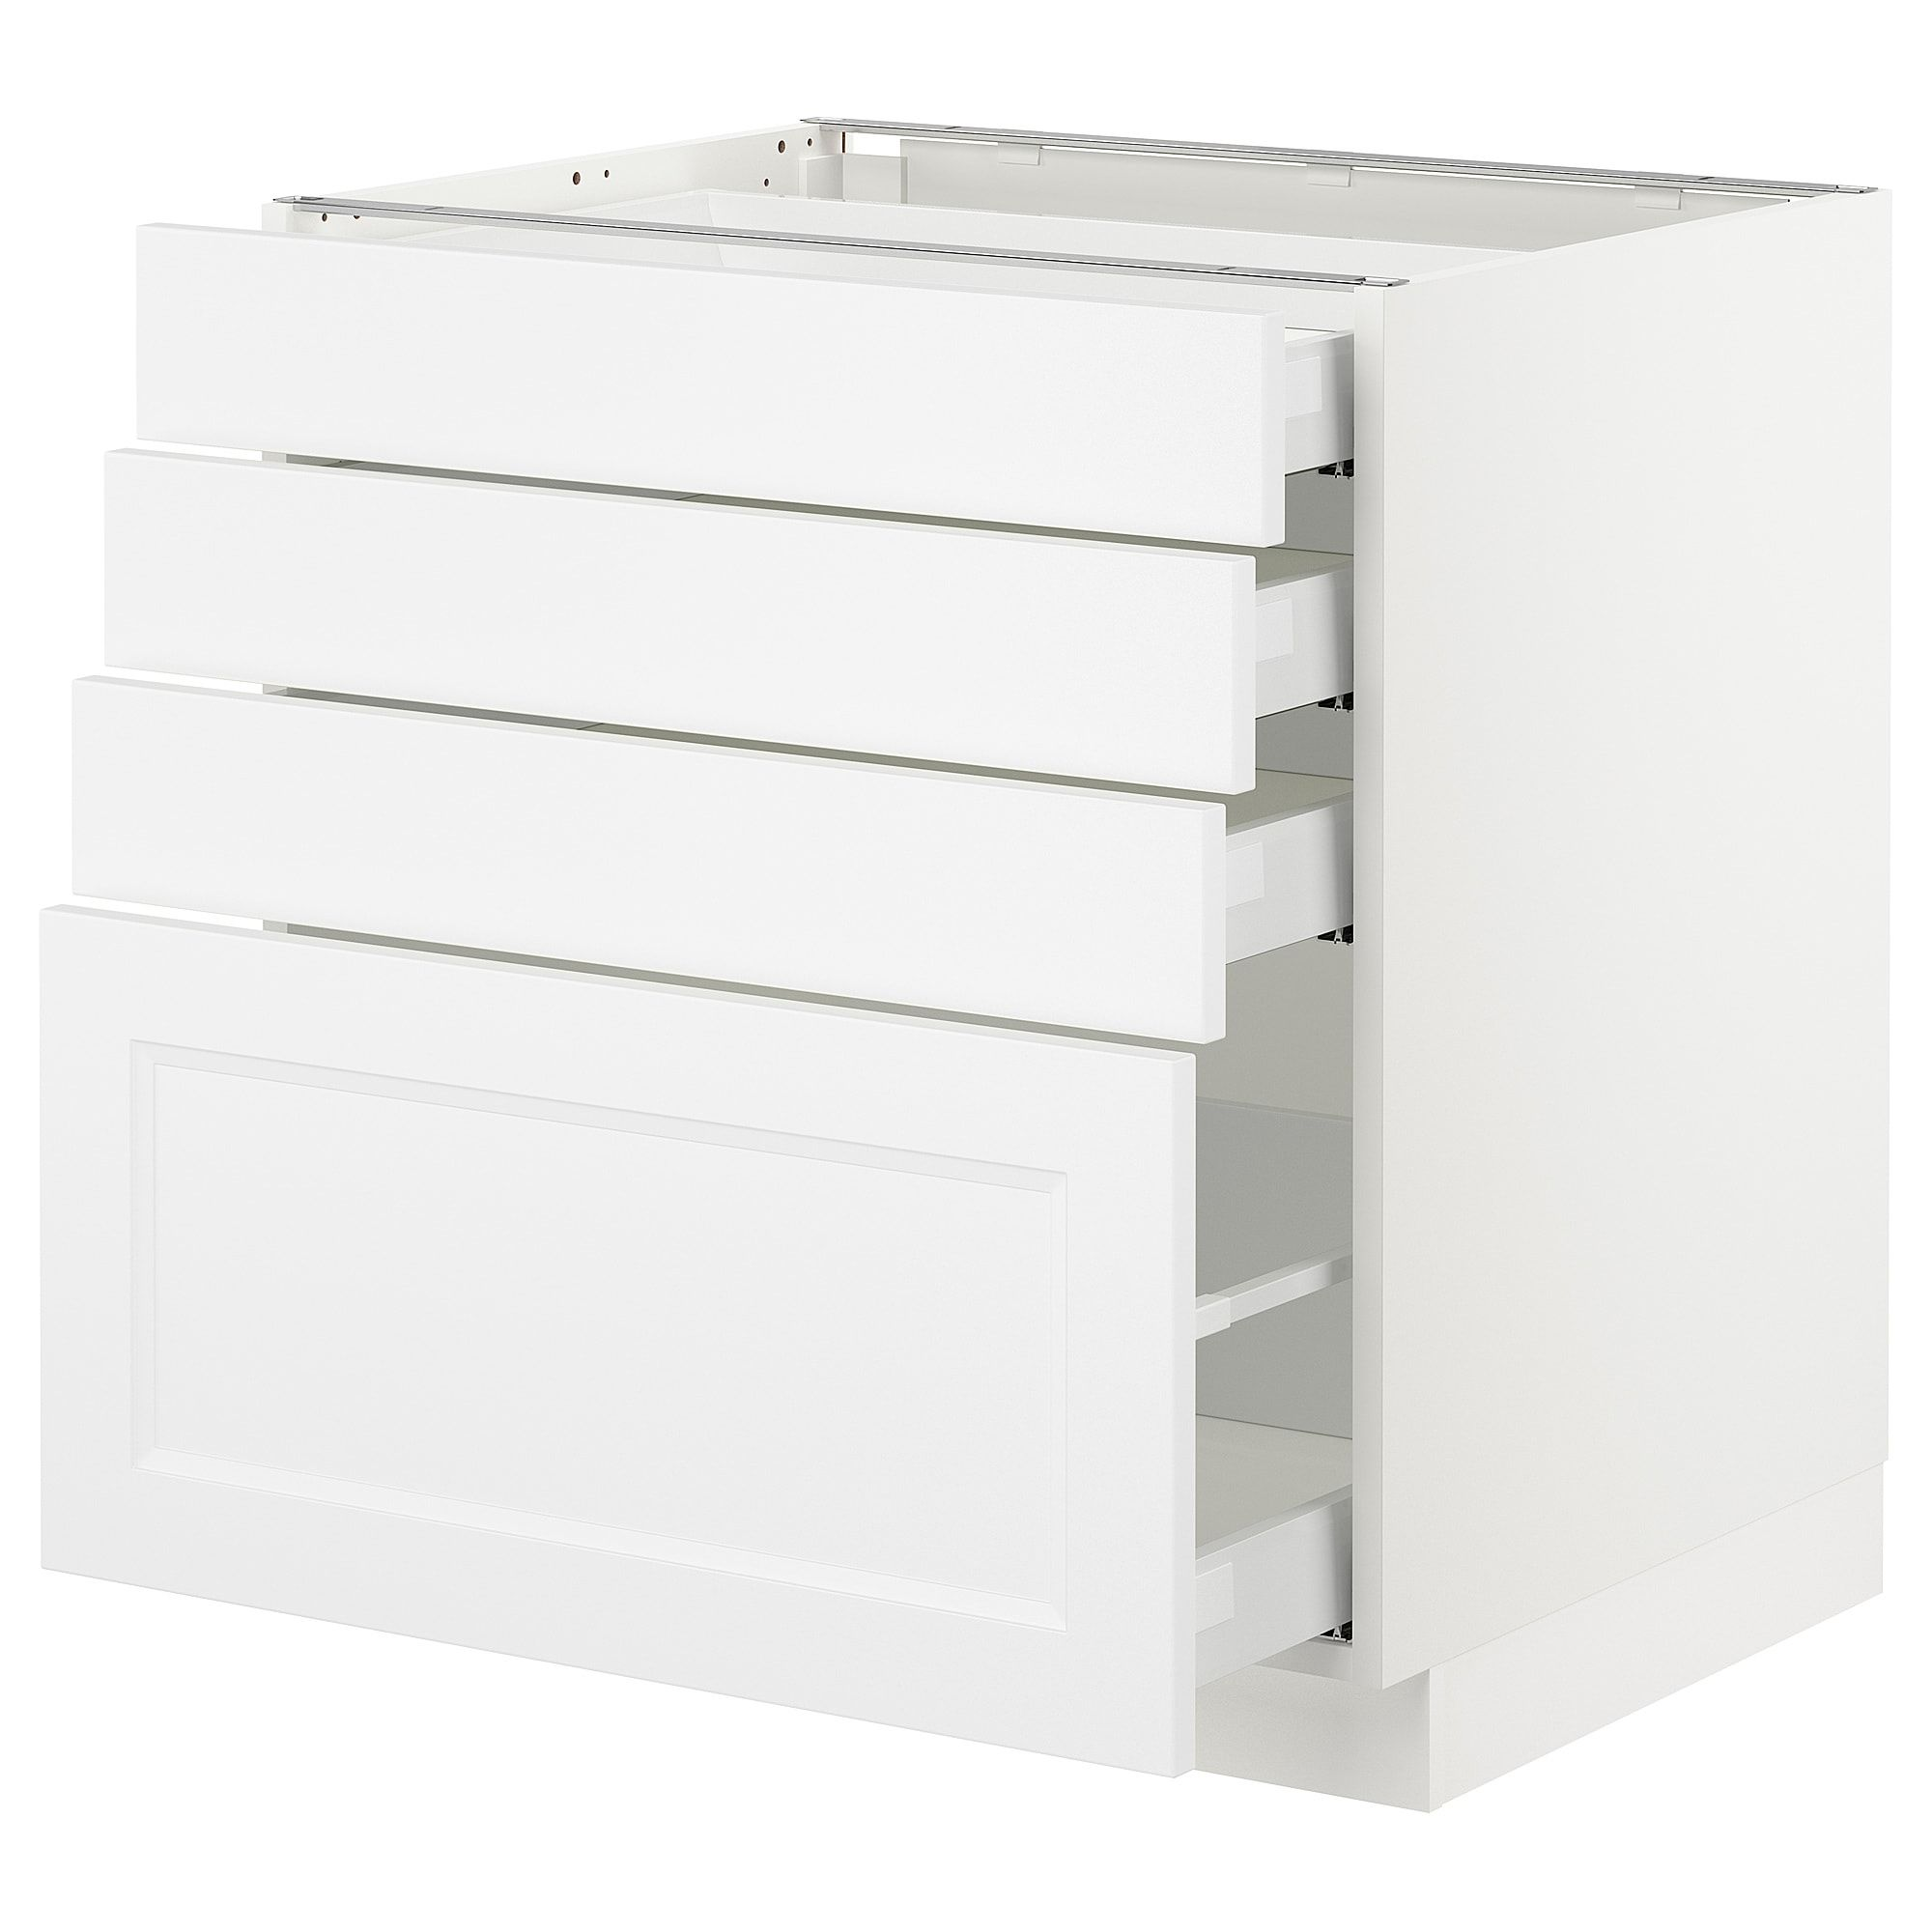 Sektion Base Cabinet With 4 Drawers White Maximera Axstad Matt White 30x24x30 76x61x76 Cm Meuble Bas Ikea Armoire